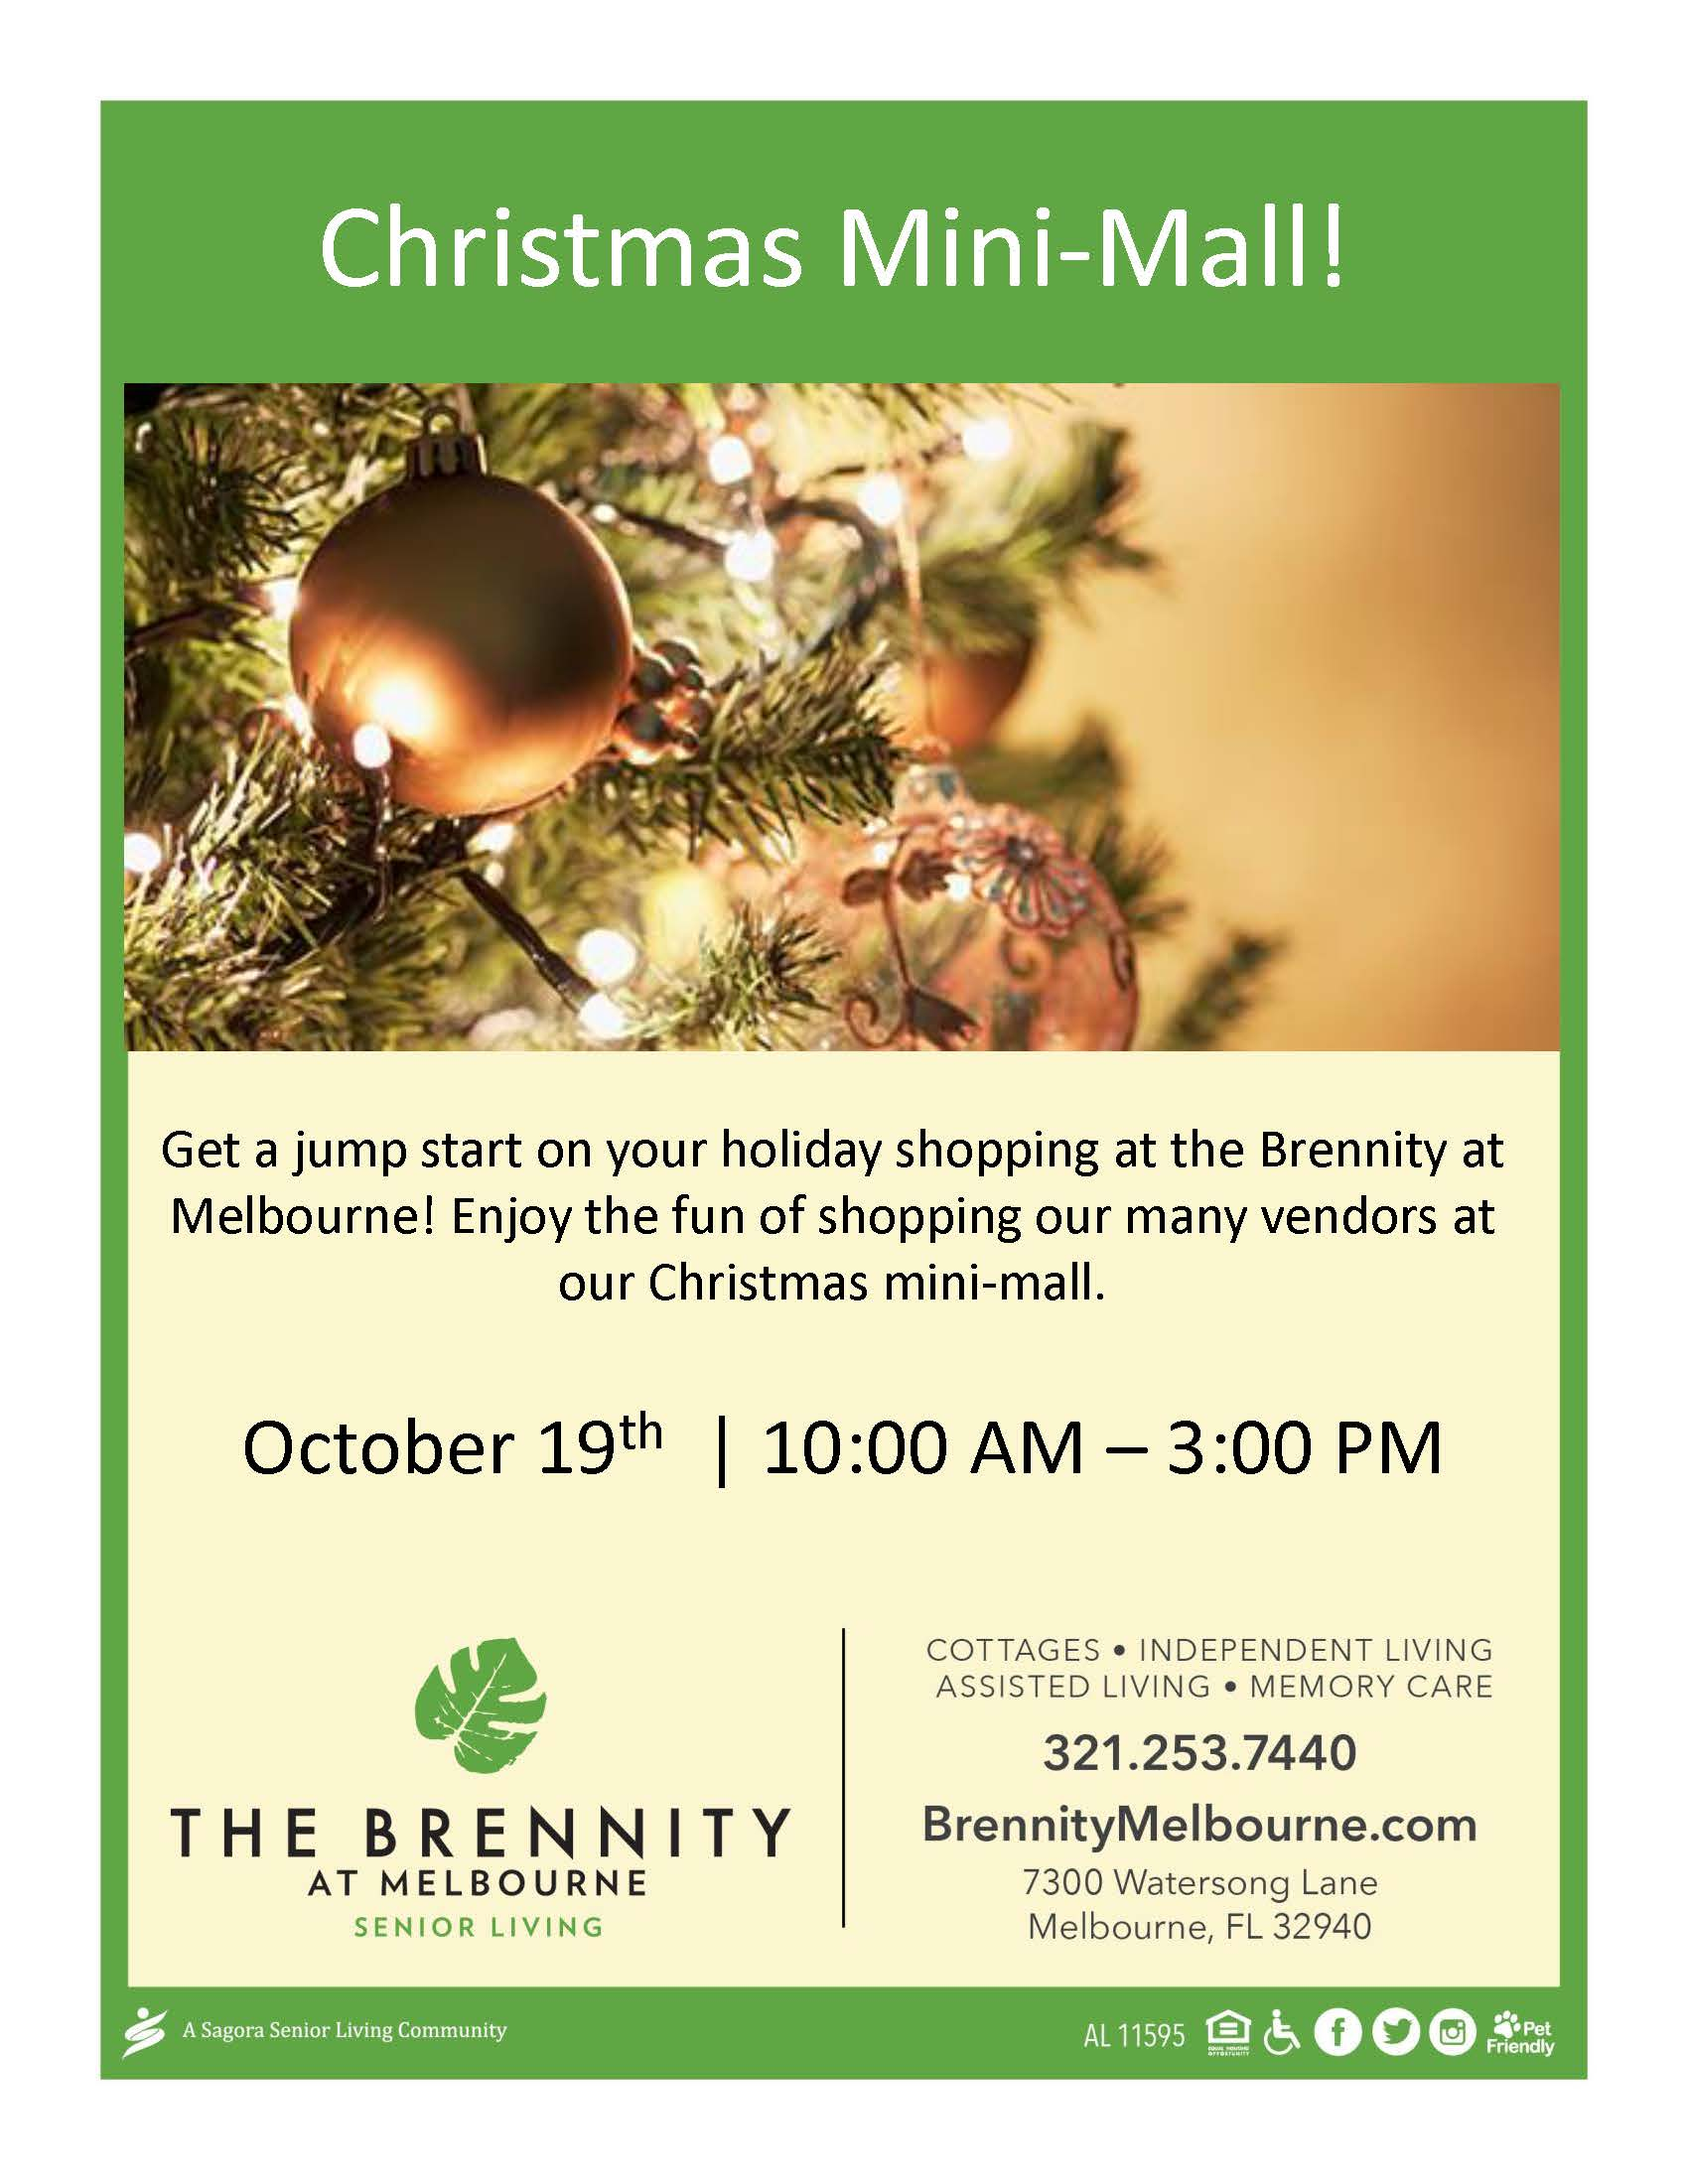 Christmas Mini-Mall at The Brennity at Melbourne